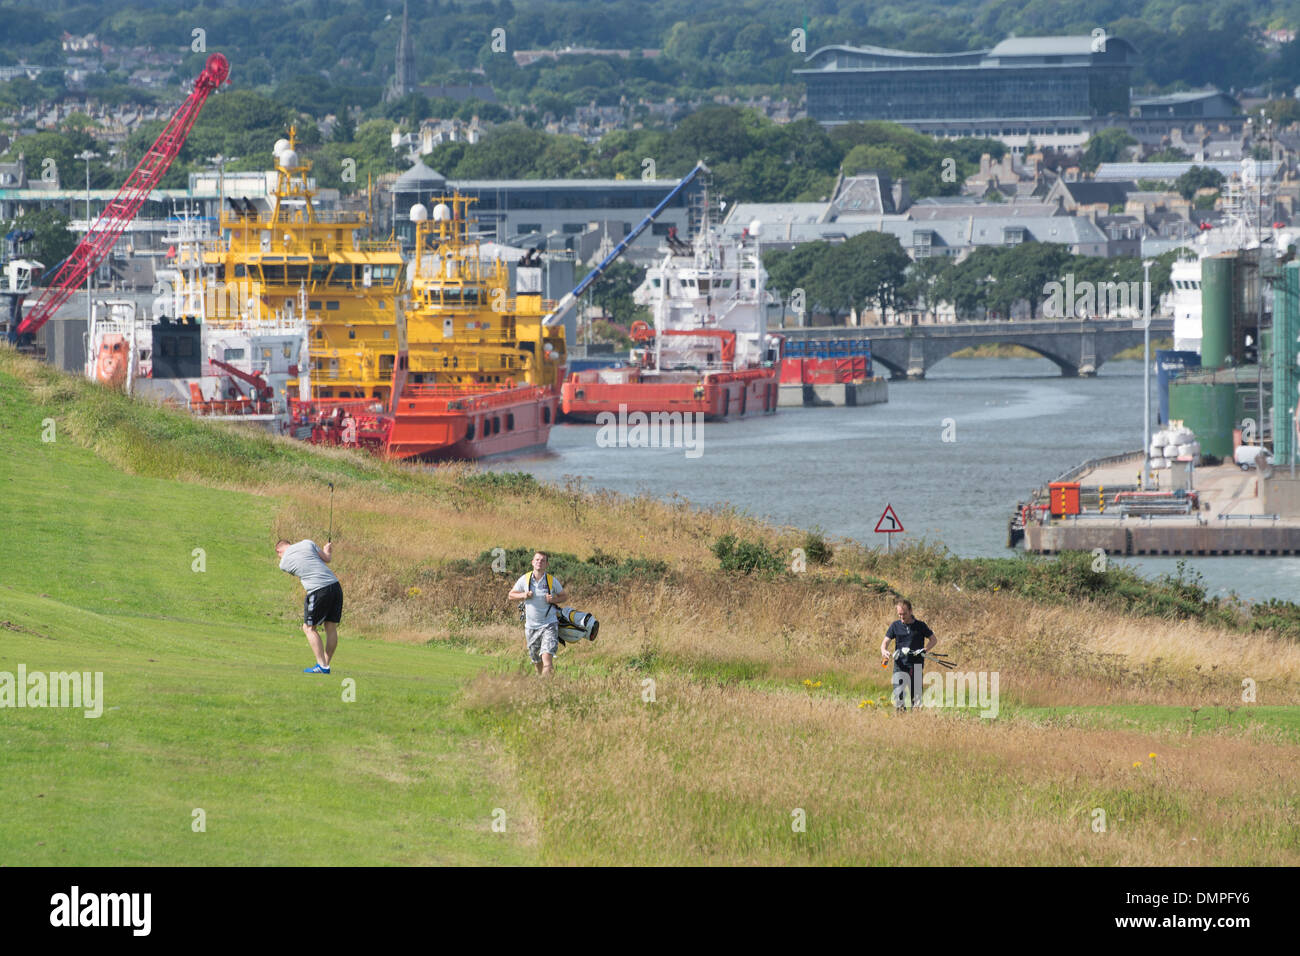 golf torry aberdeen golfers supply vessels - Stock Image